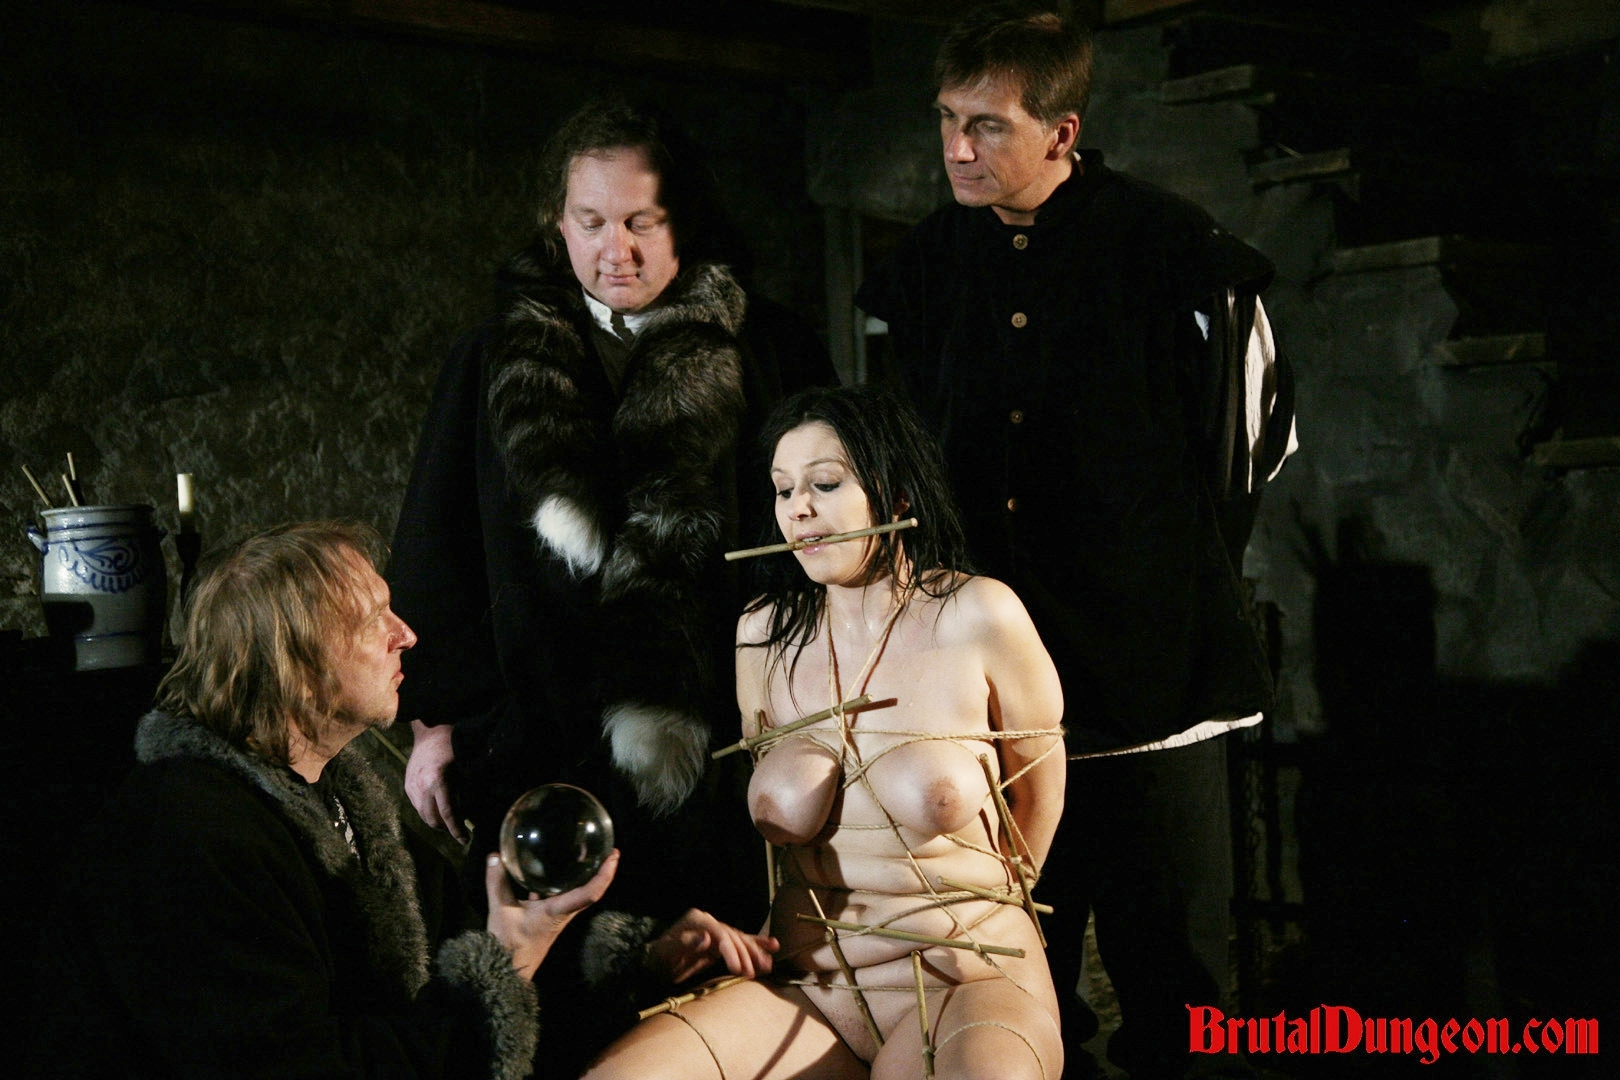 Brunette gypsy imprisoned bdsm gang bang. Gypsy, a excited brunette fortune teller, will endure imprisonment, BDSM gang bang, domination, rope bondage and suspension, spanking, slapping, humiliation, fingering, breast, nipple and kitty tortured at the dungeon. It hasn't happened yet, so she masturbates and thinks about the punishment orgasm soon.